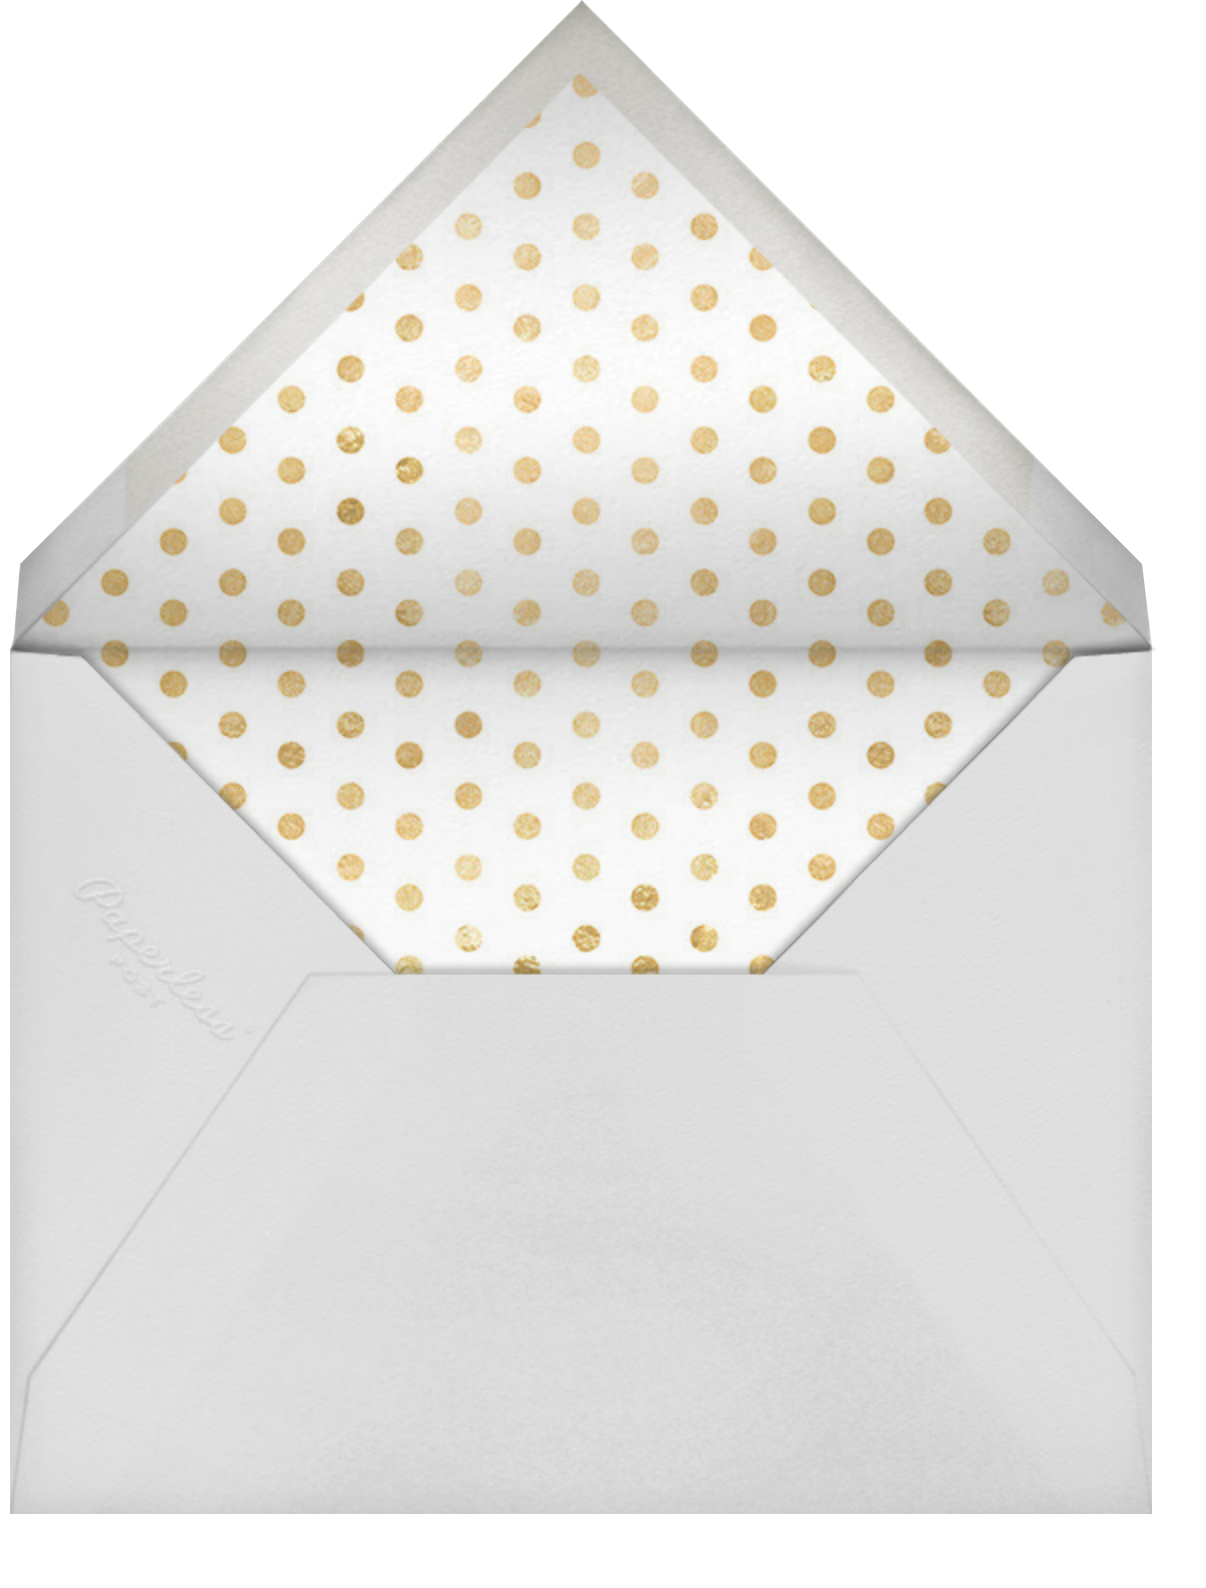 Champagne Tower - Rifle Paper Co. - Professional events - envelope back